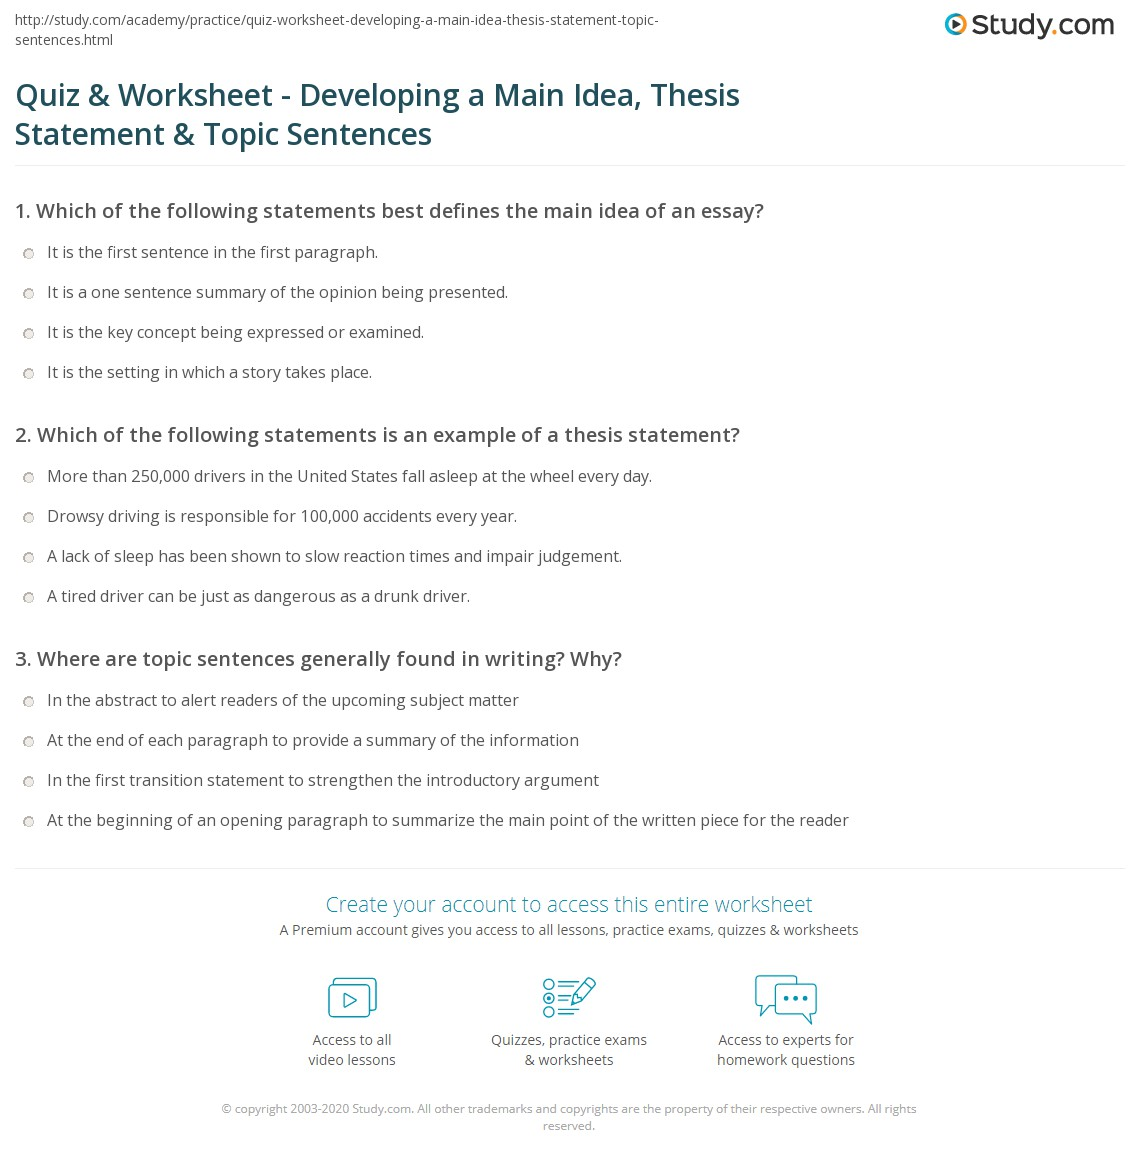 Quiz & Worksheet - Developing a Main Idea, Thesis Statement ...